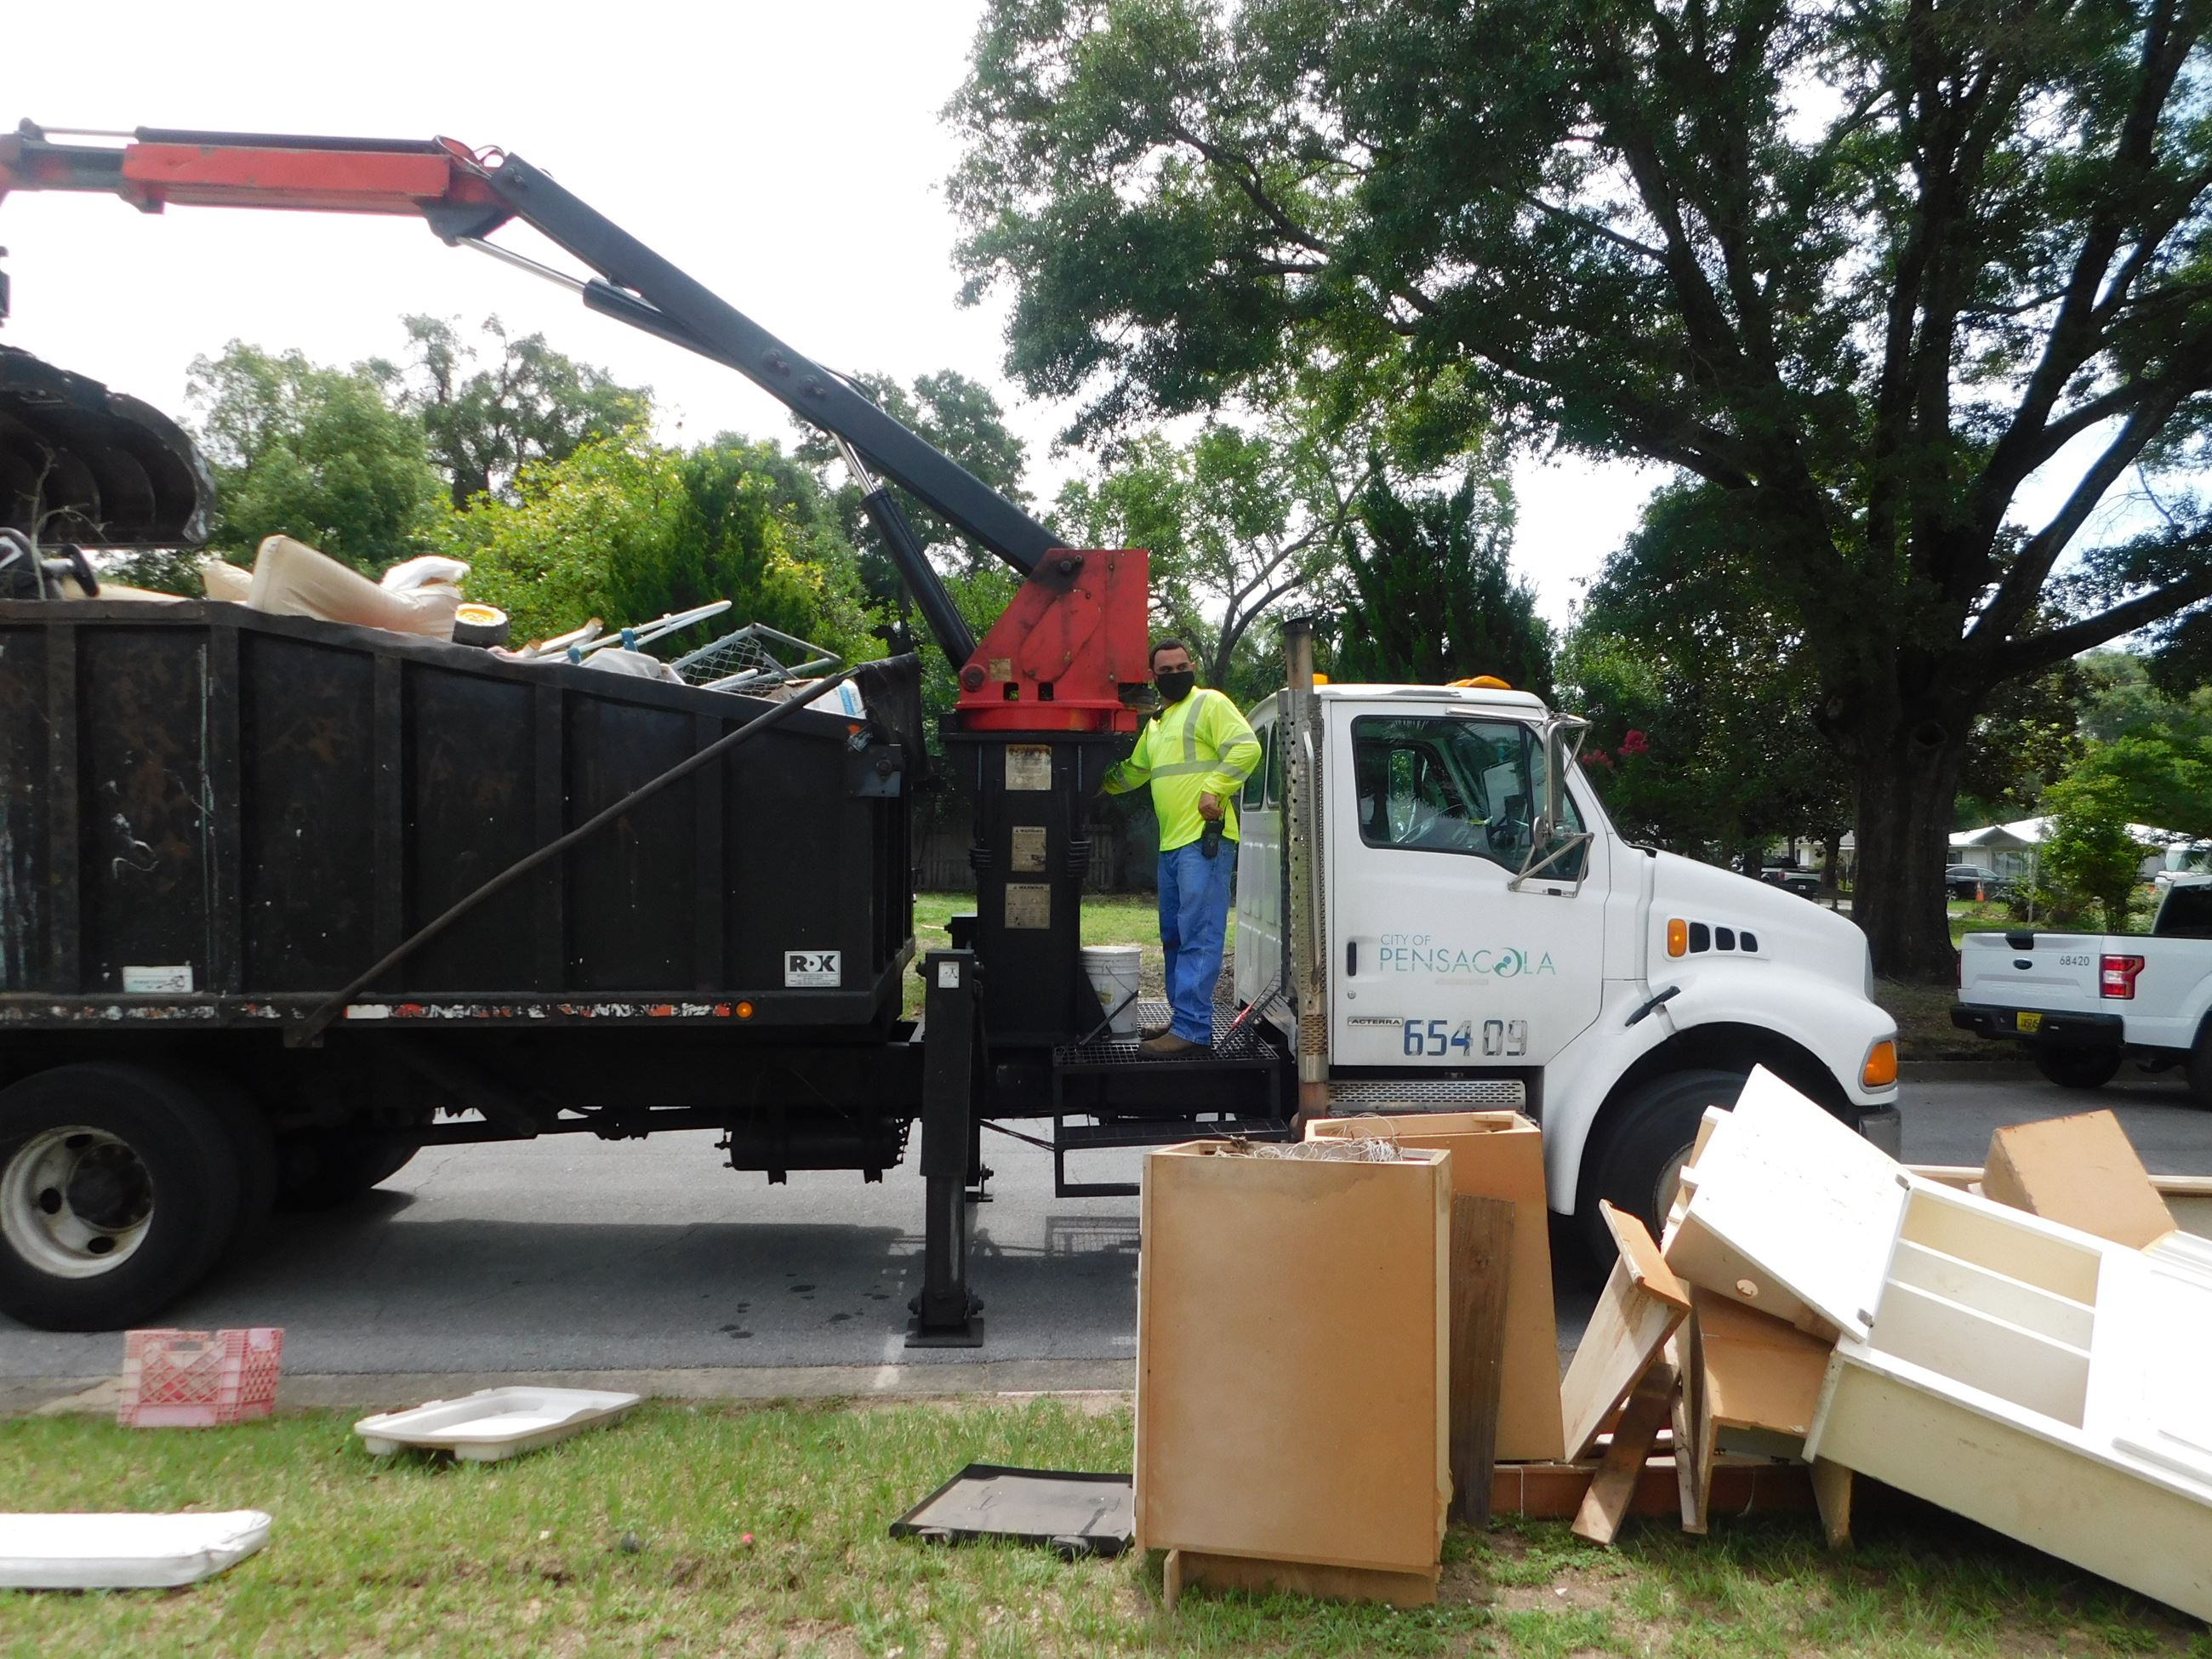 A city sanitation worker on a truck picks up debris during the mayor's neighborhood cleanup